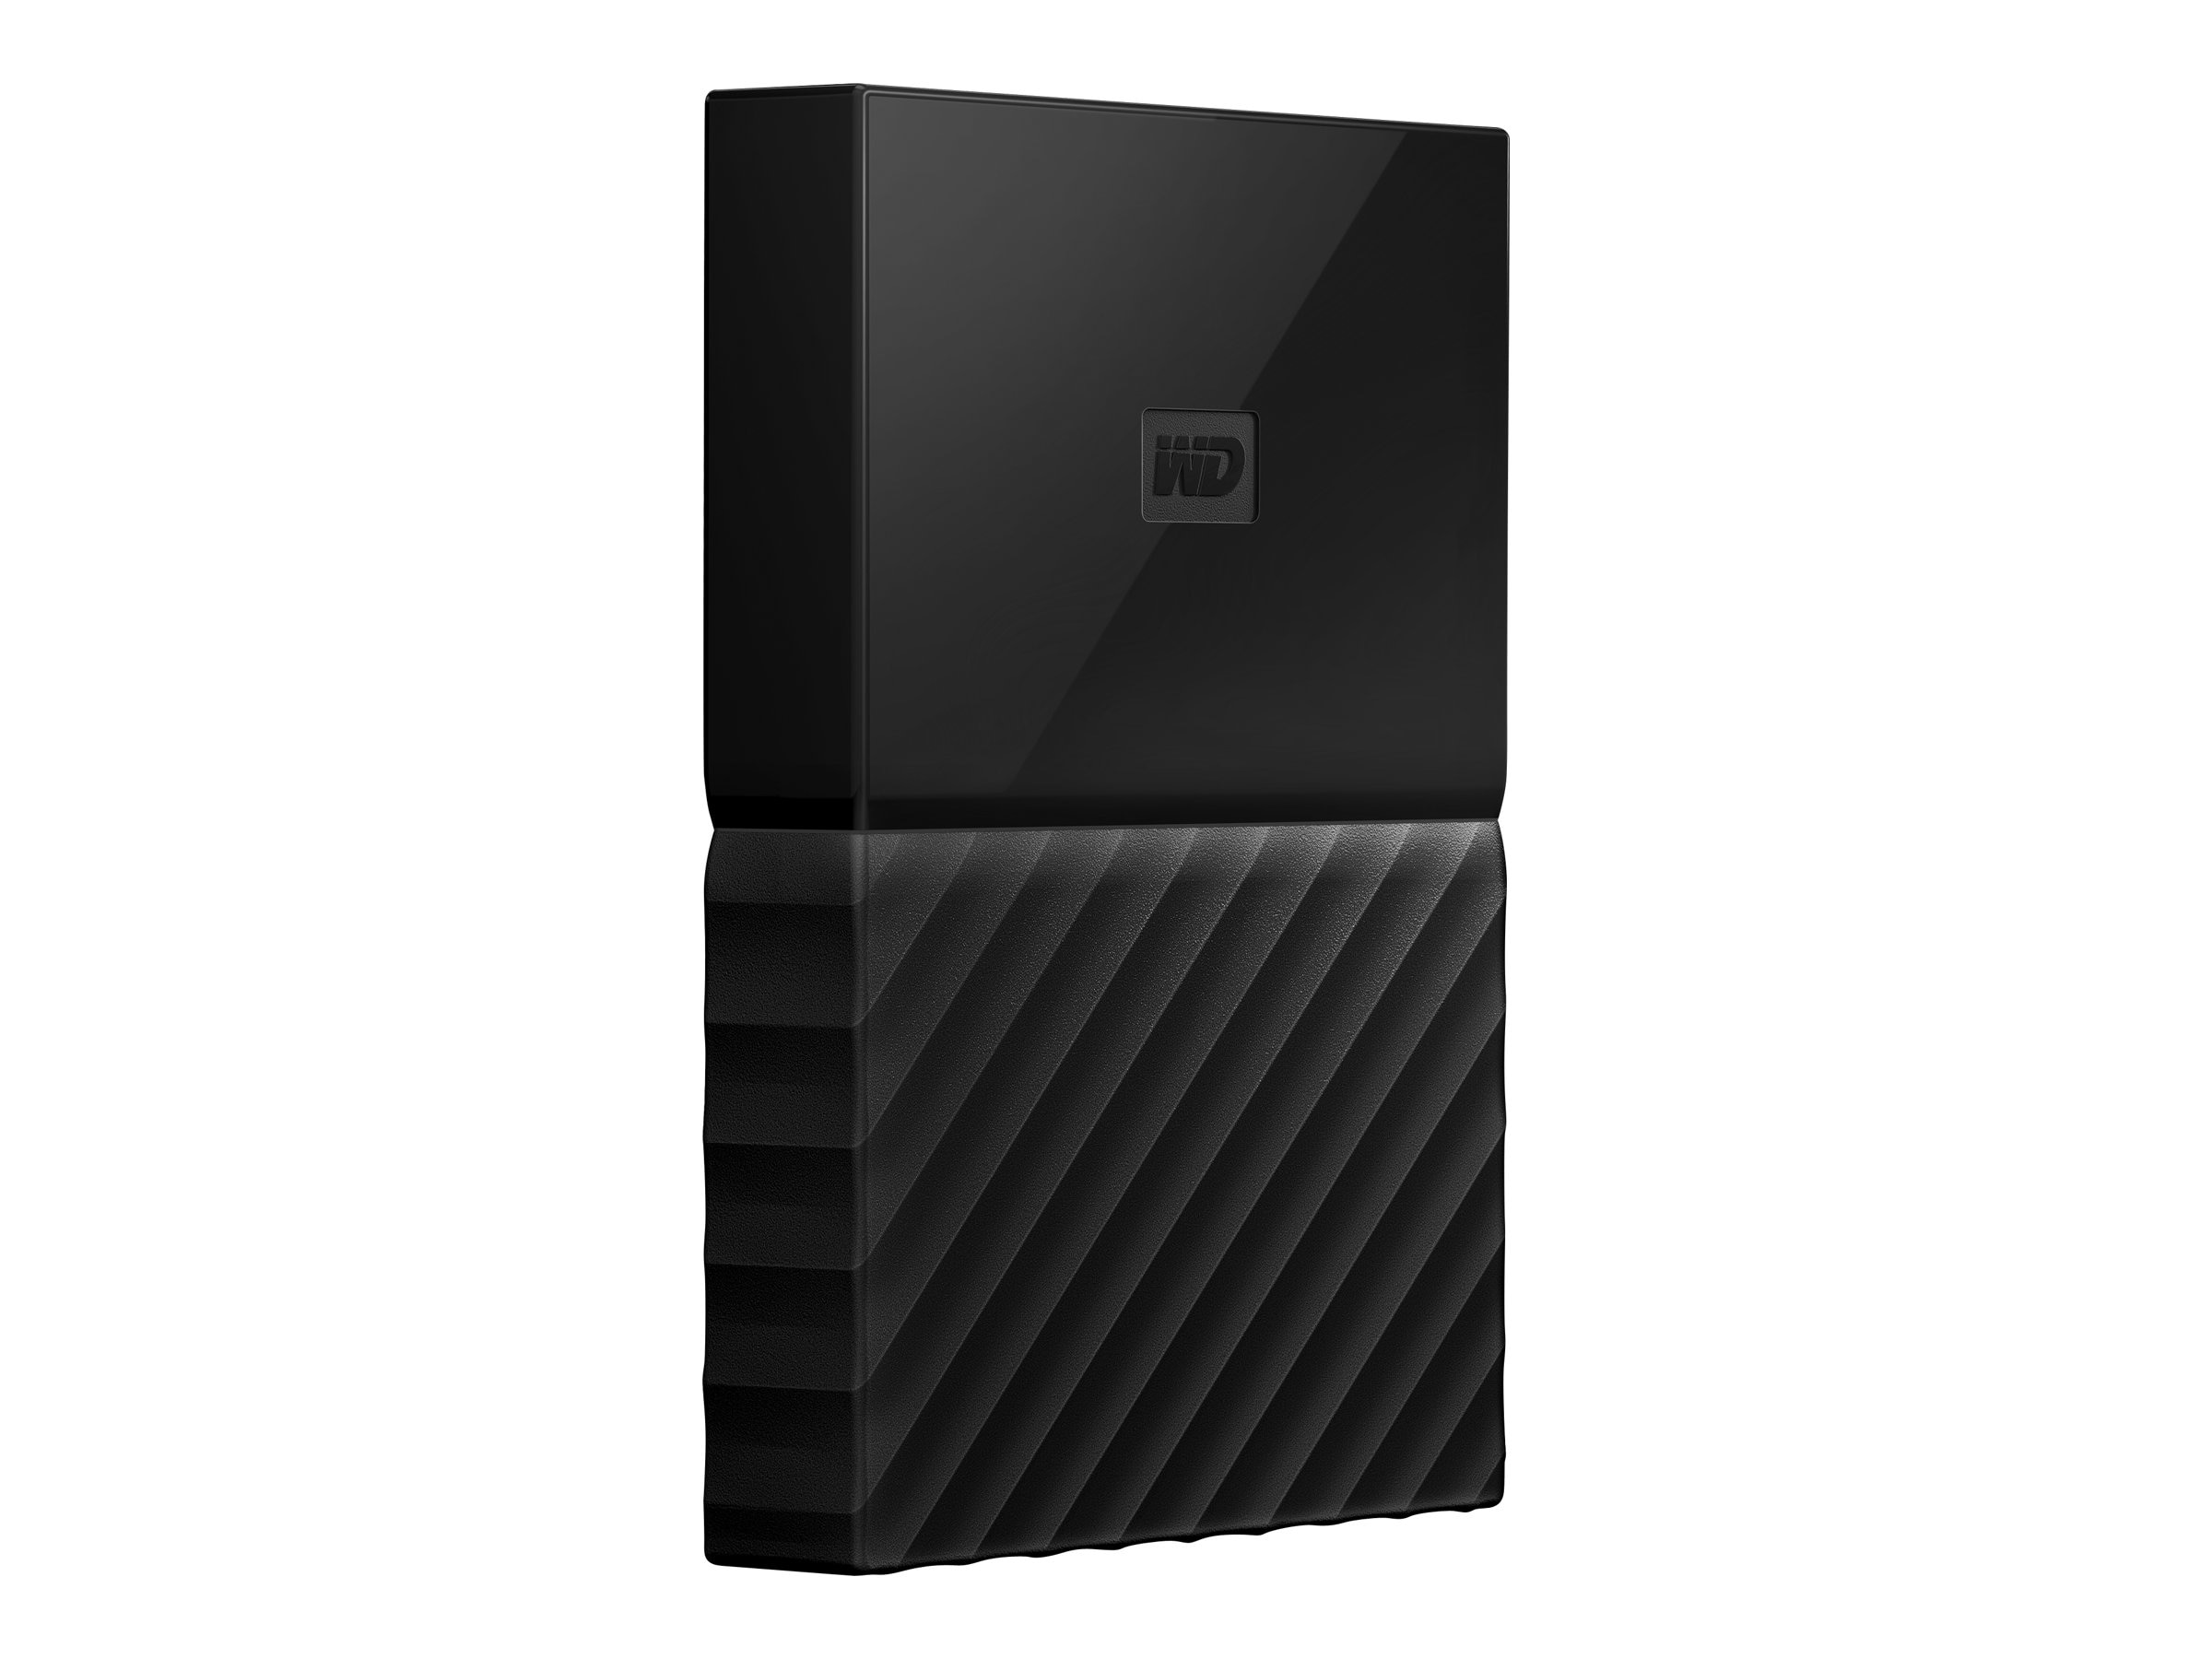 WD 4TB My Passport for Mac Black, WDBP6A0040BBK-WESN